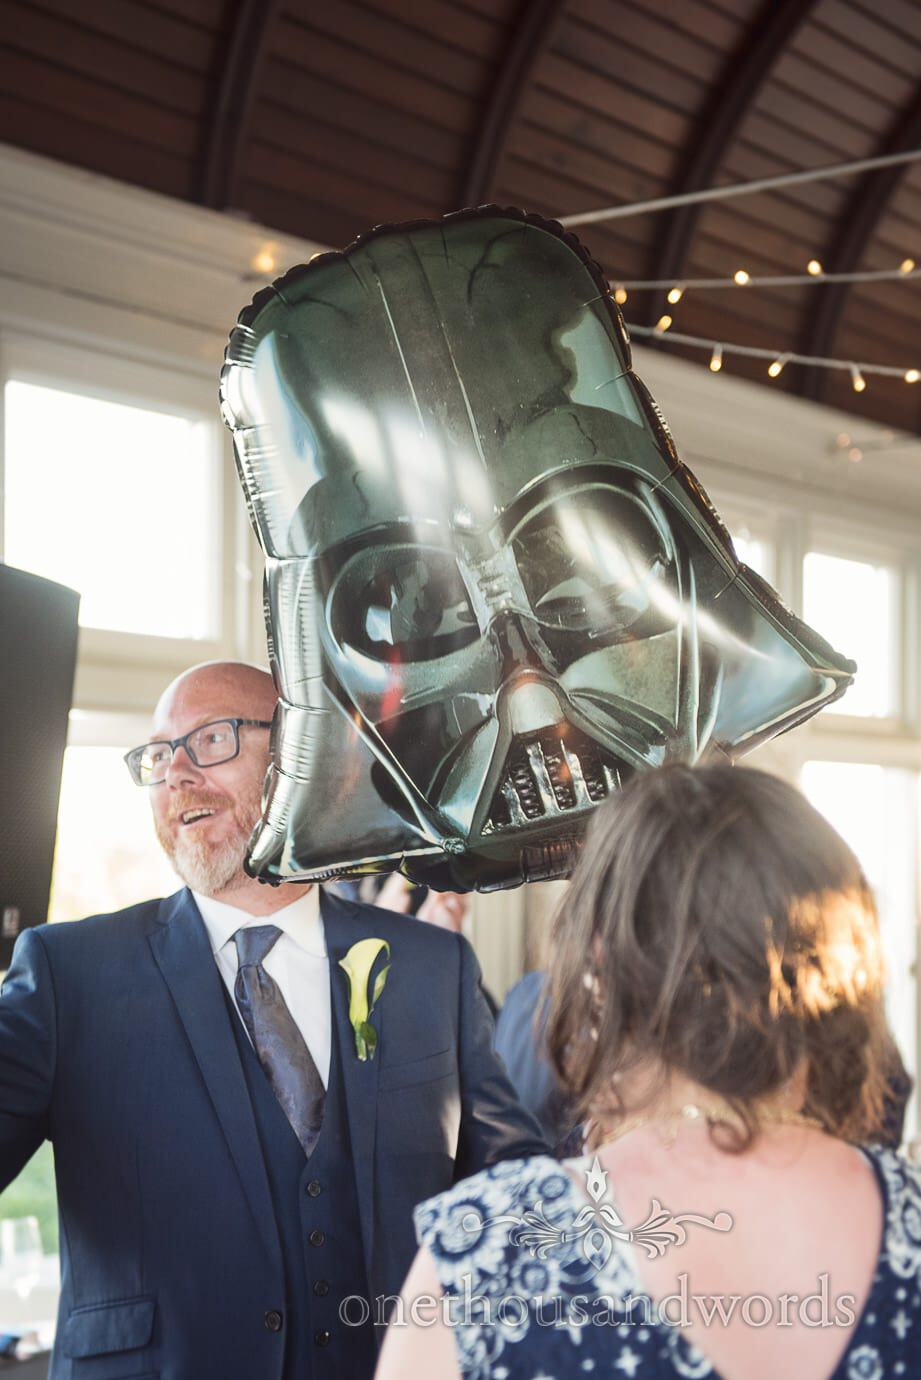 Darth Vader balloon gift at Durlston Castle wedding venue in Dorset